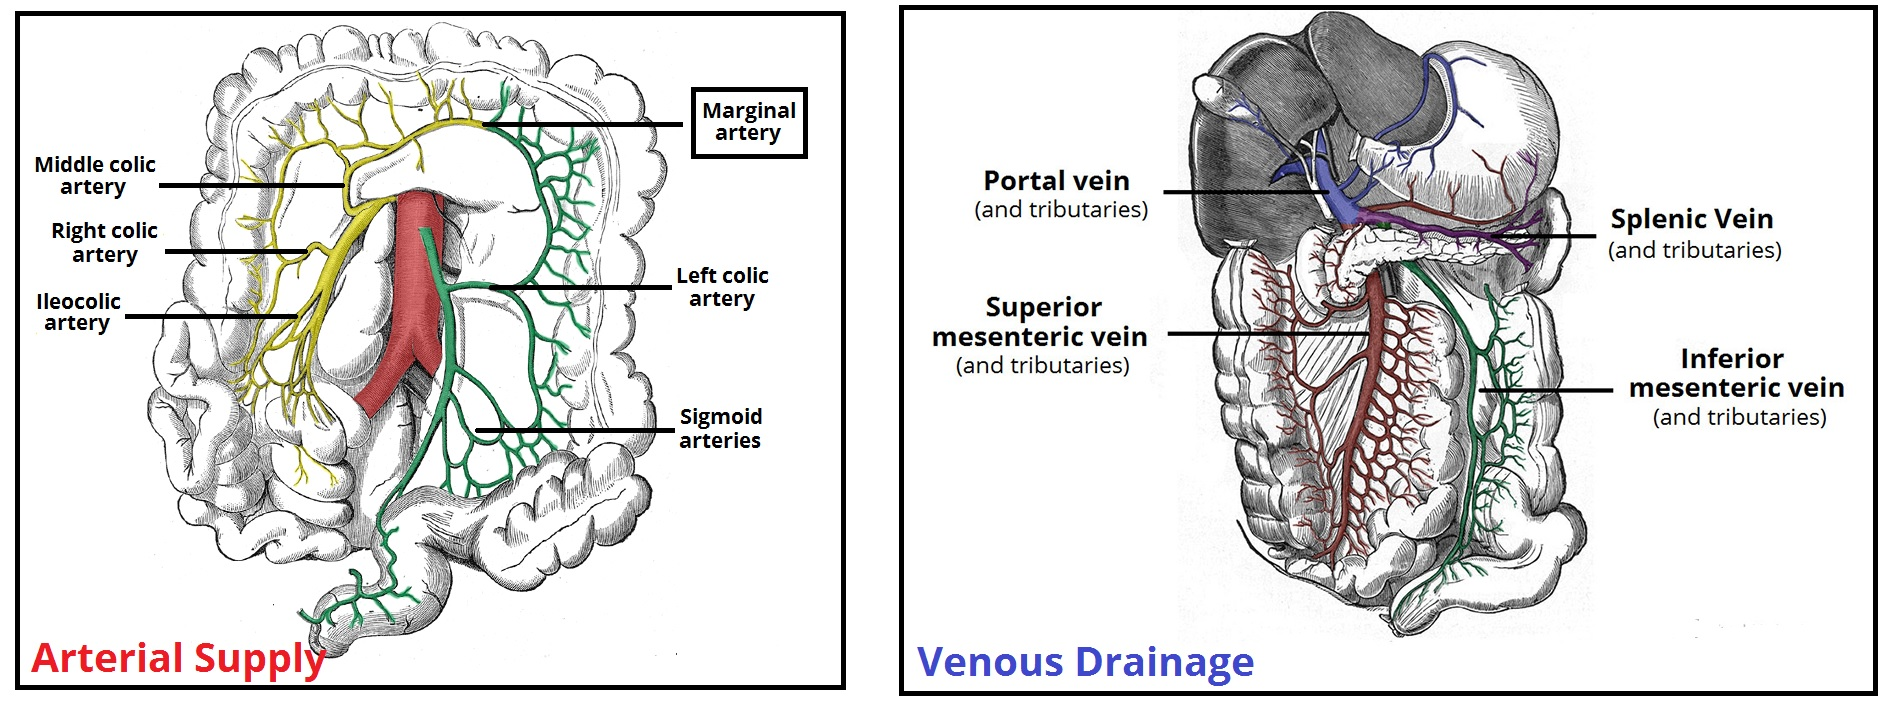 Fig 3 - The major arteries and veins supplying the colon.